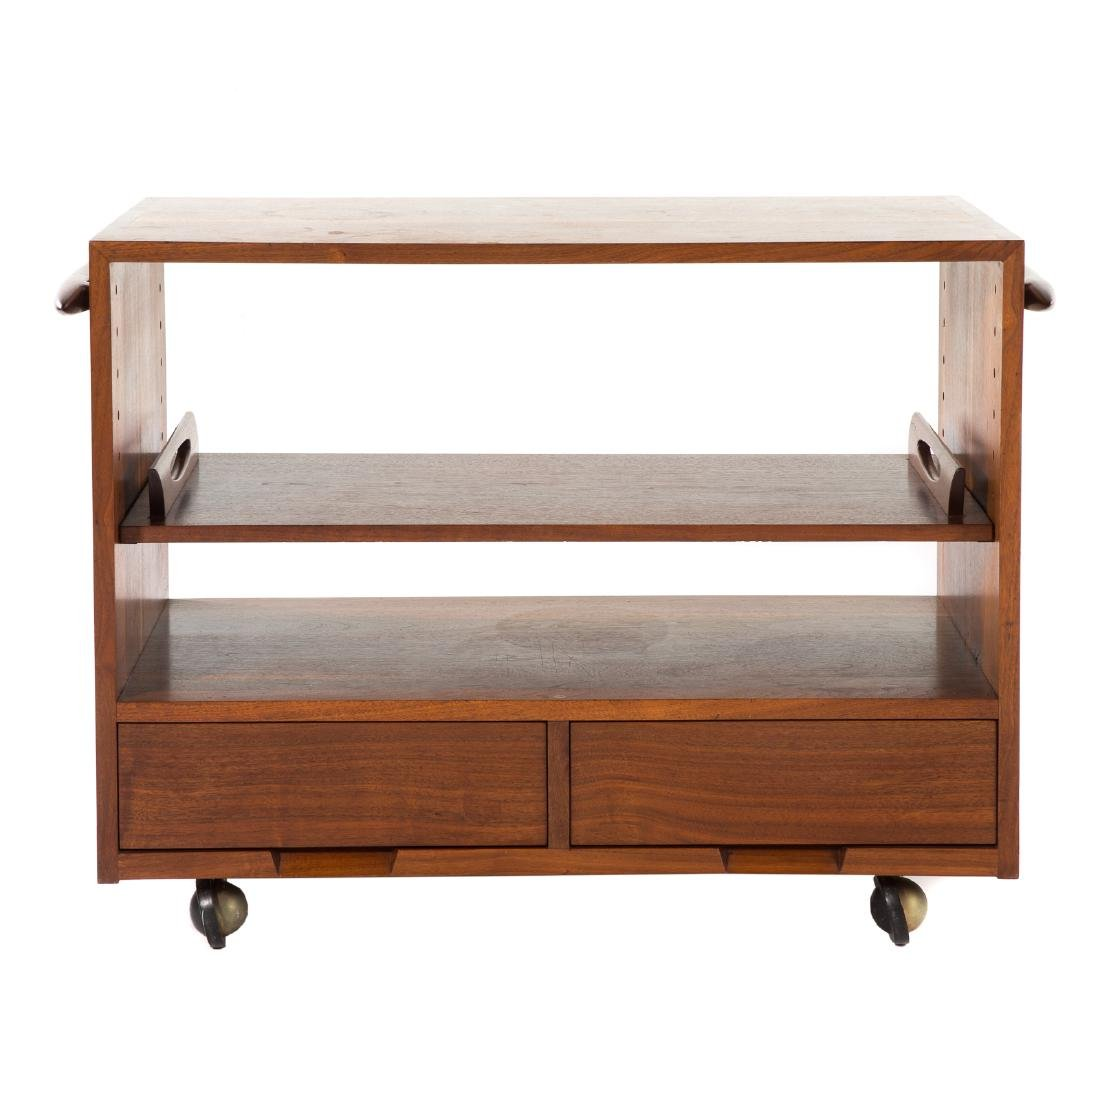 George Nakashima Rare Custom Tea Cart